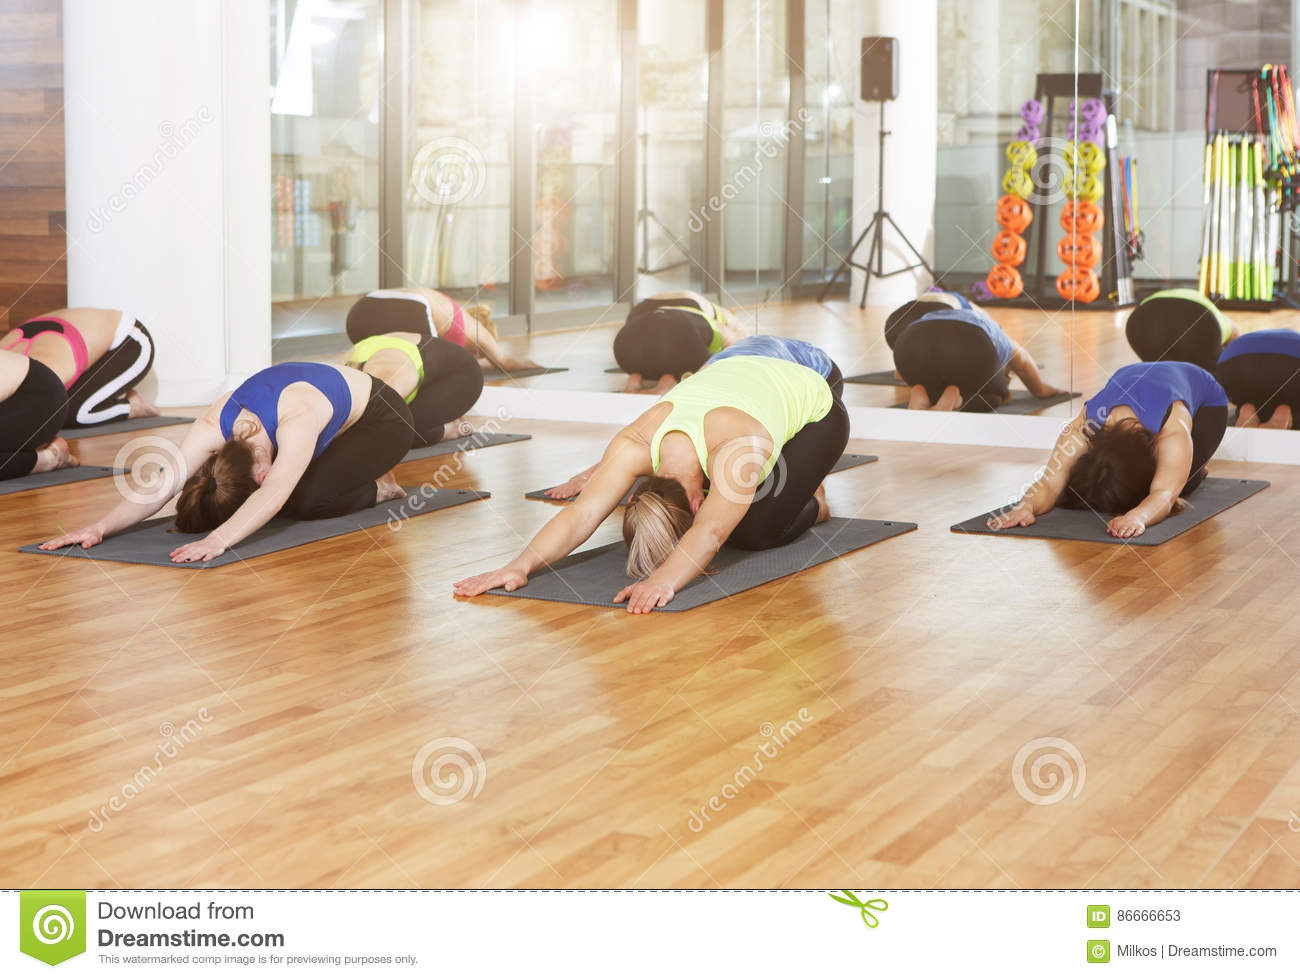 Group of young women in yoga class